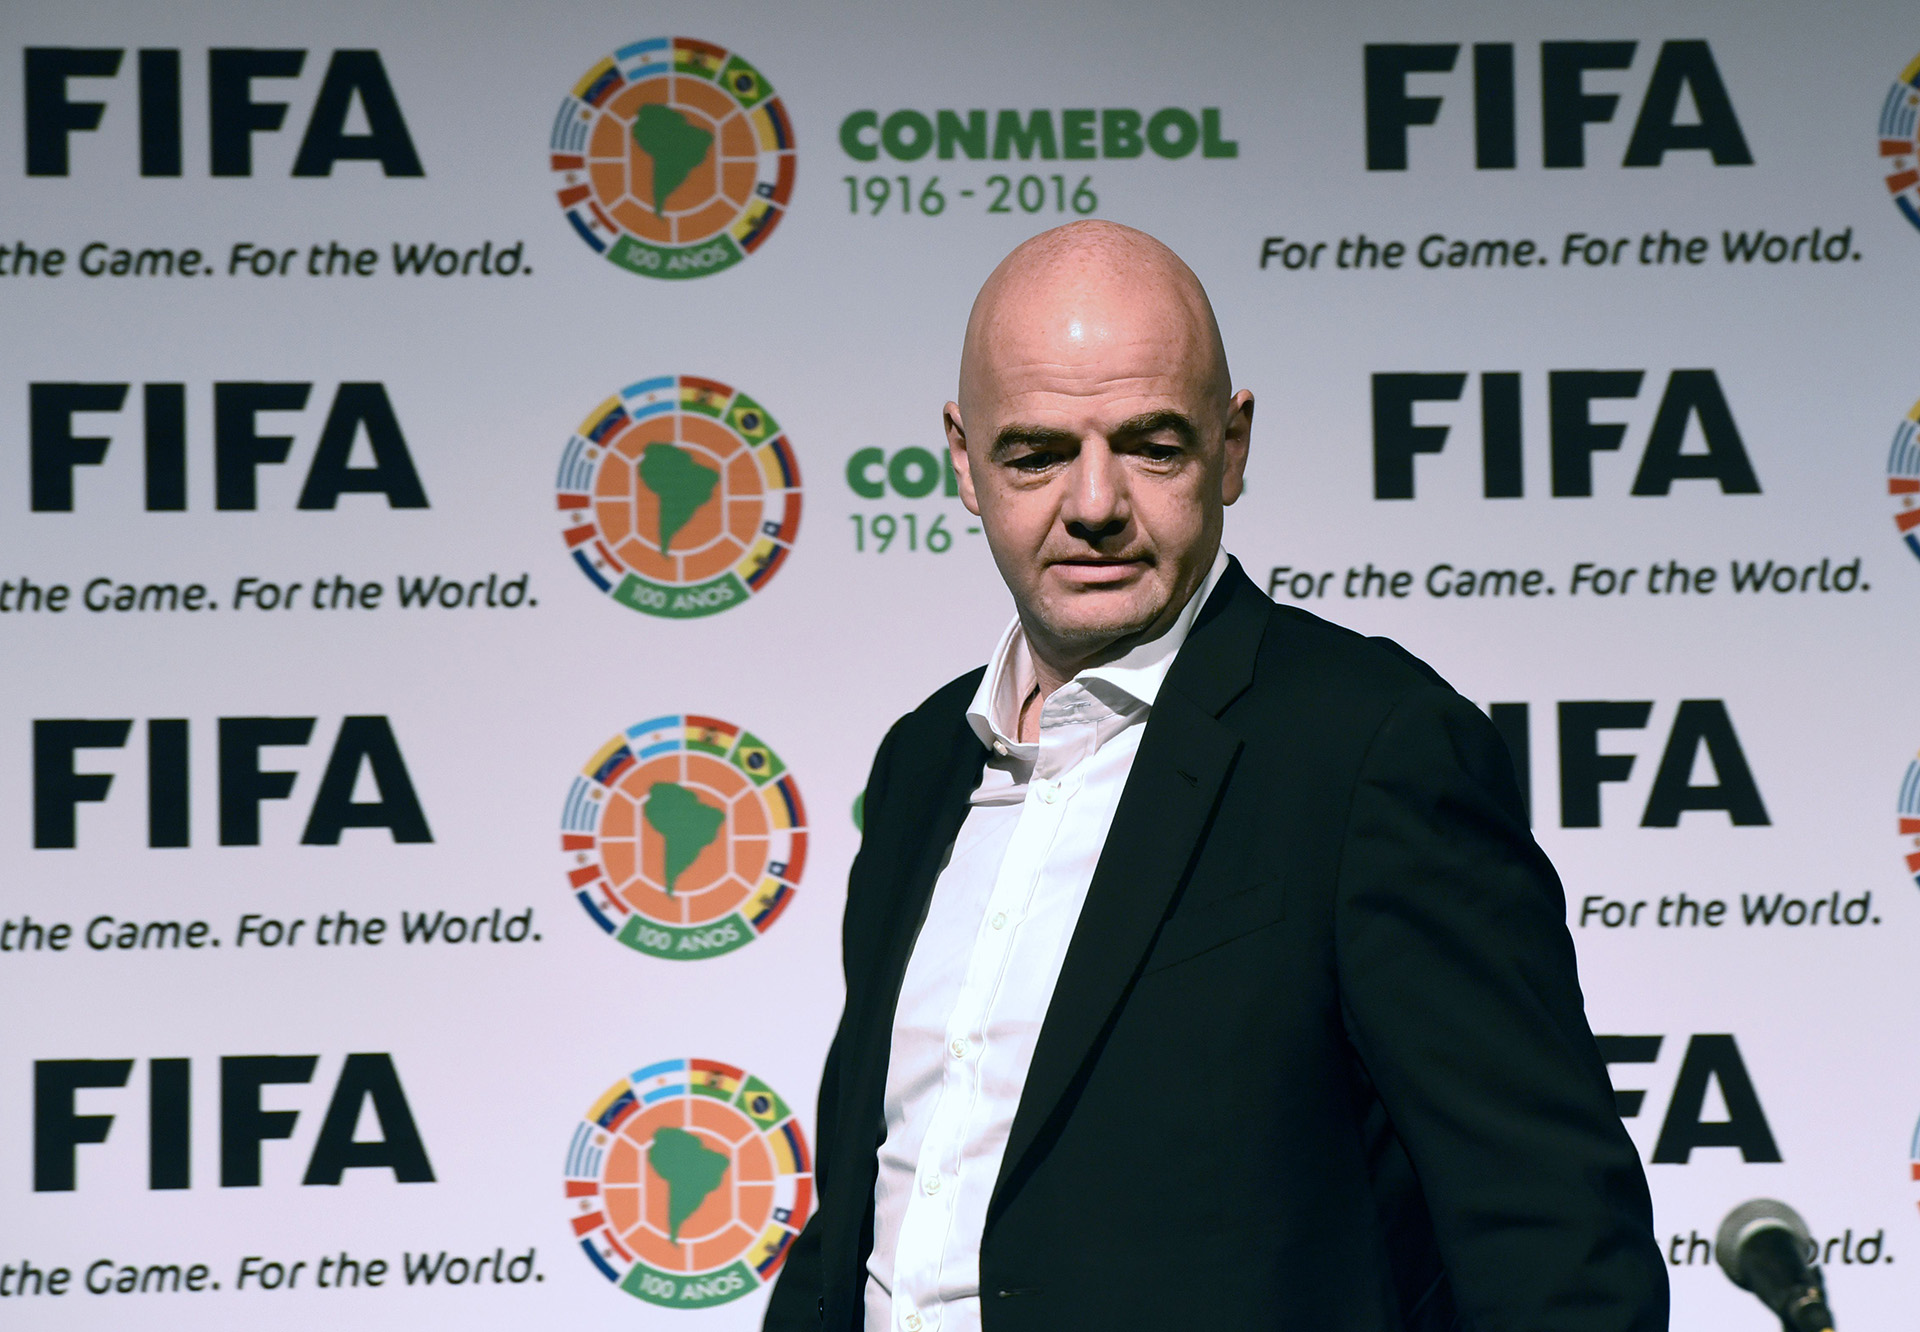 FIFA Covid-19 working group proposes June global window postponements